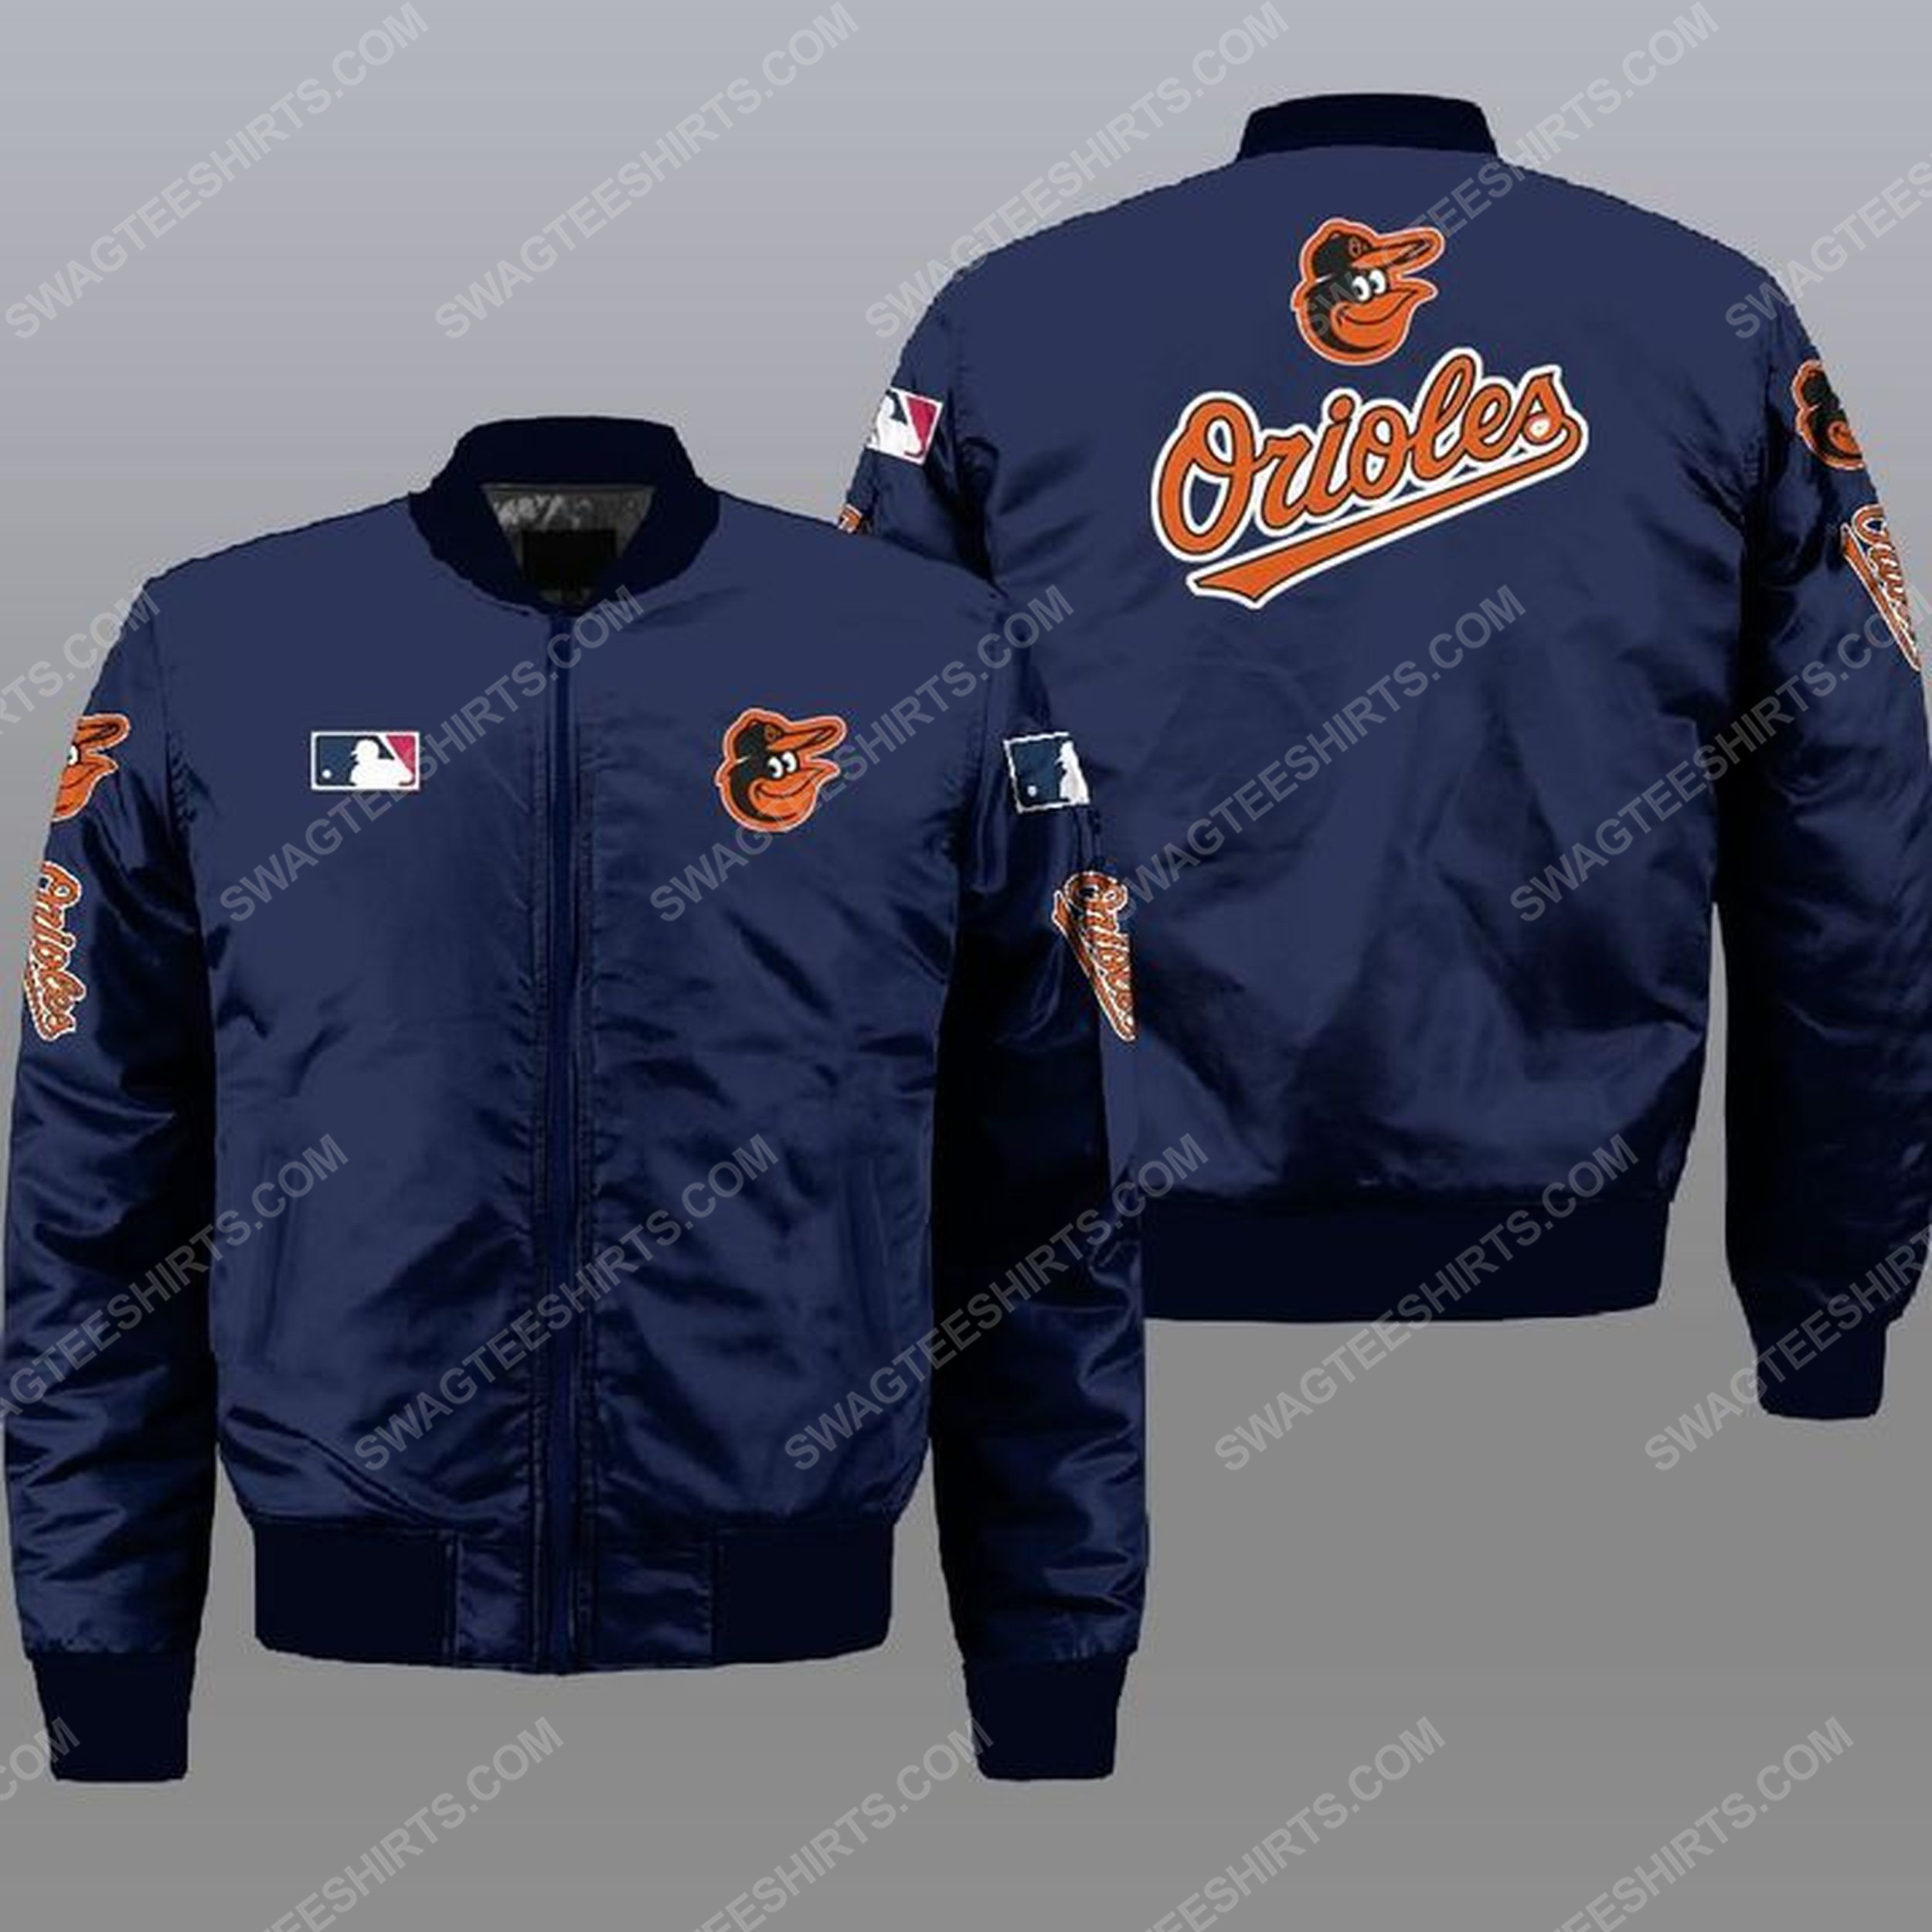 The baltimore orioles mlb all over print bomber jacket -navy 1